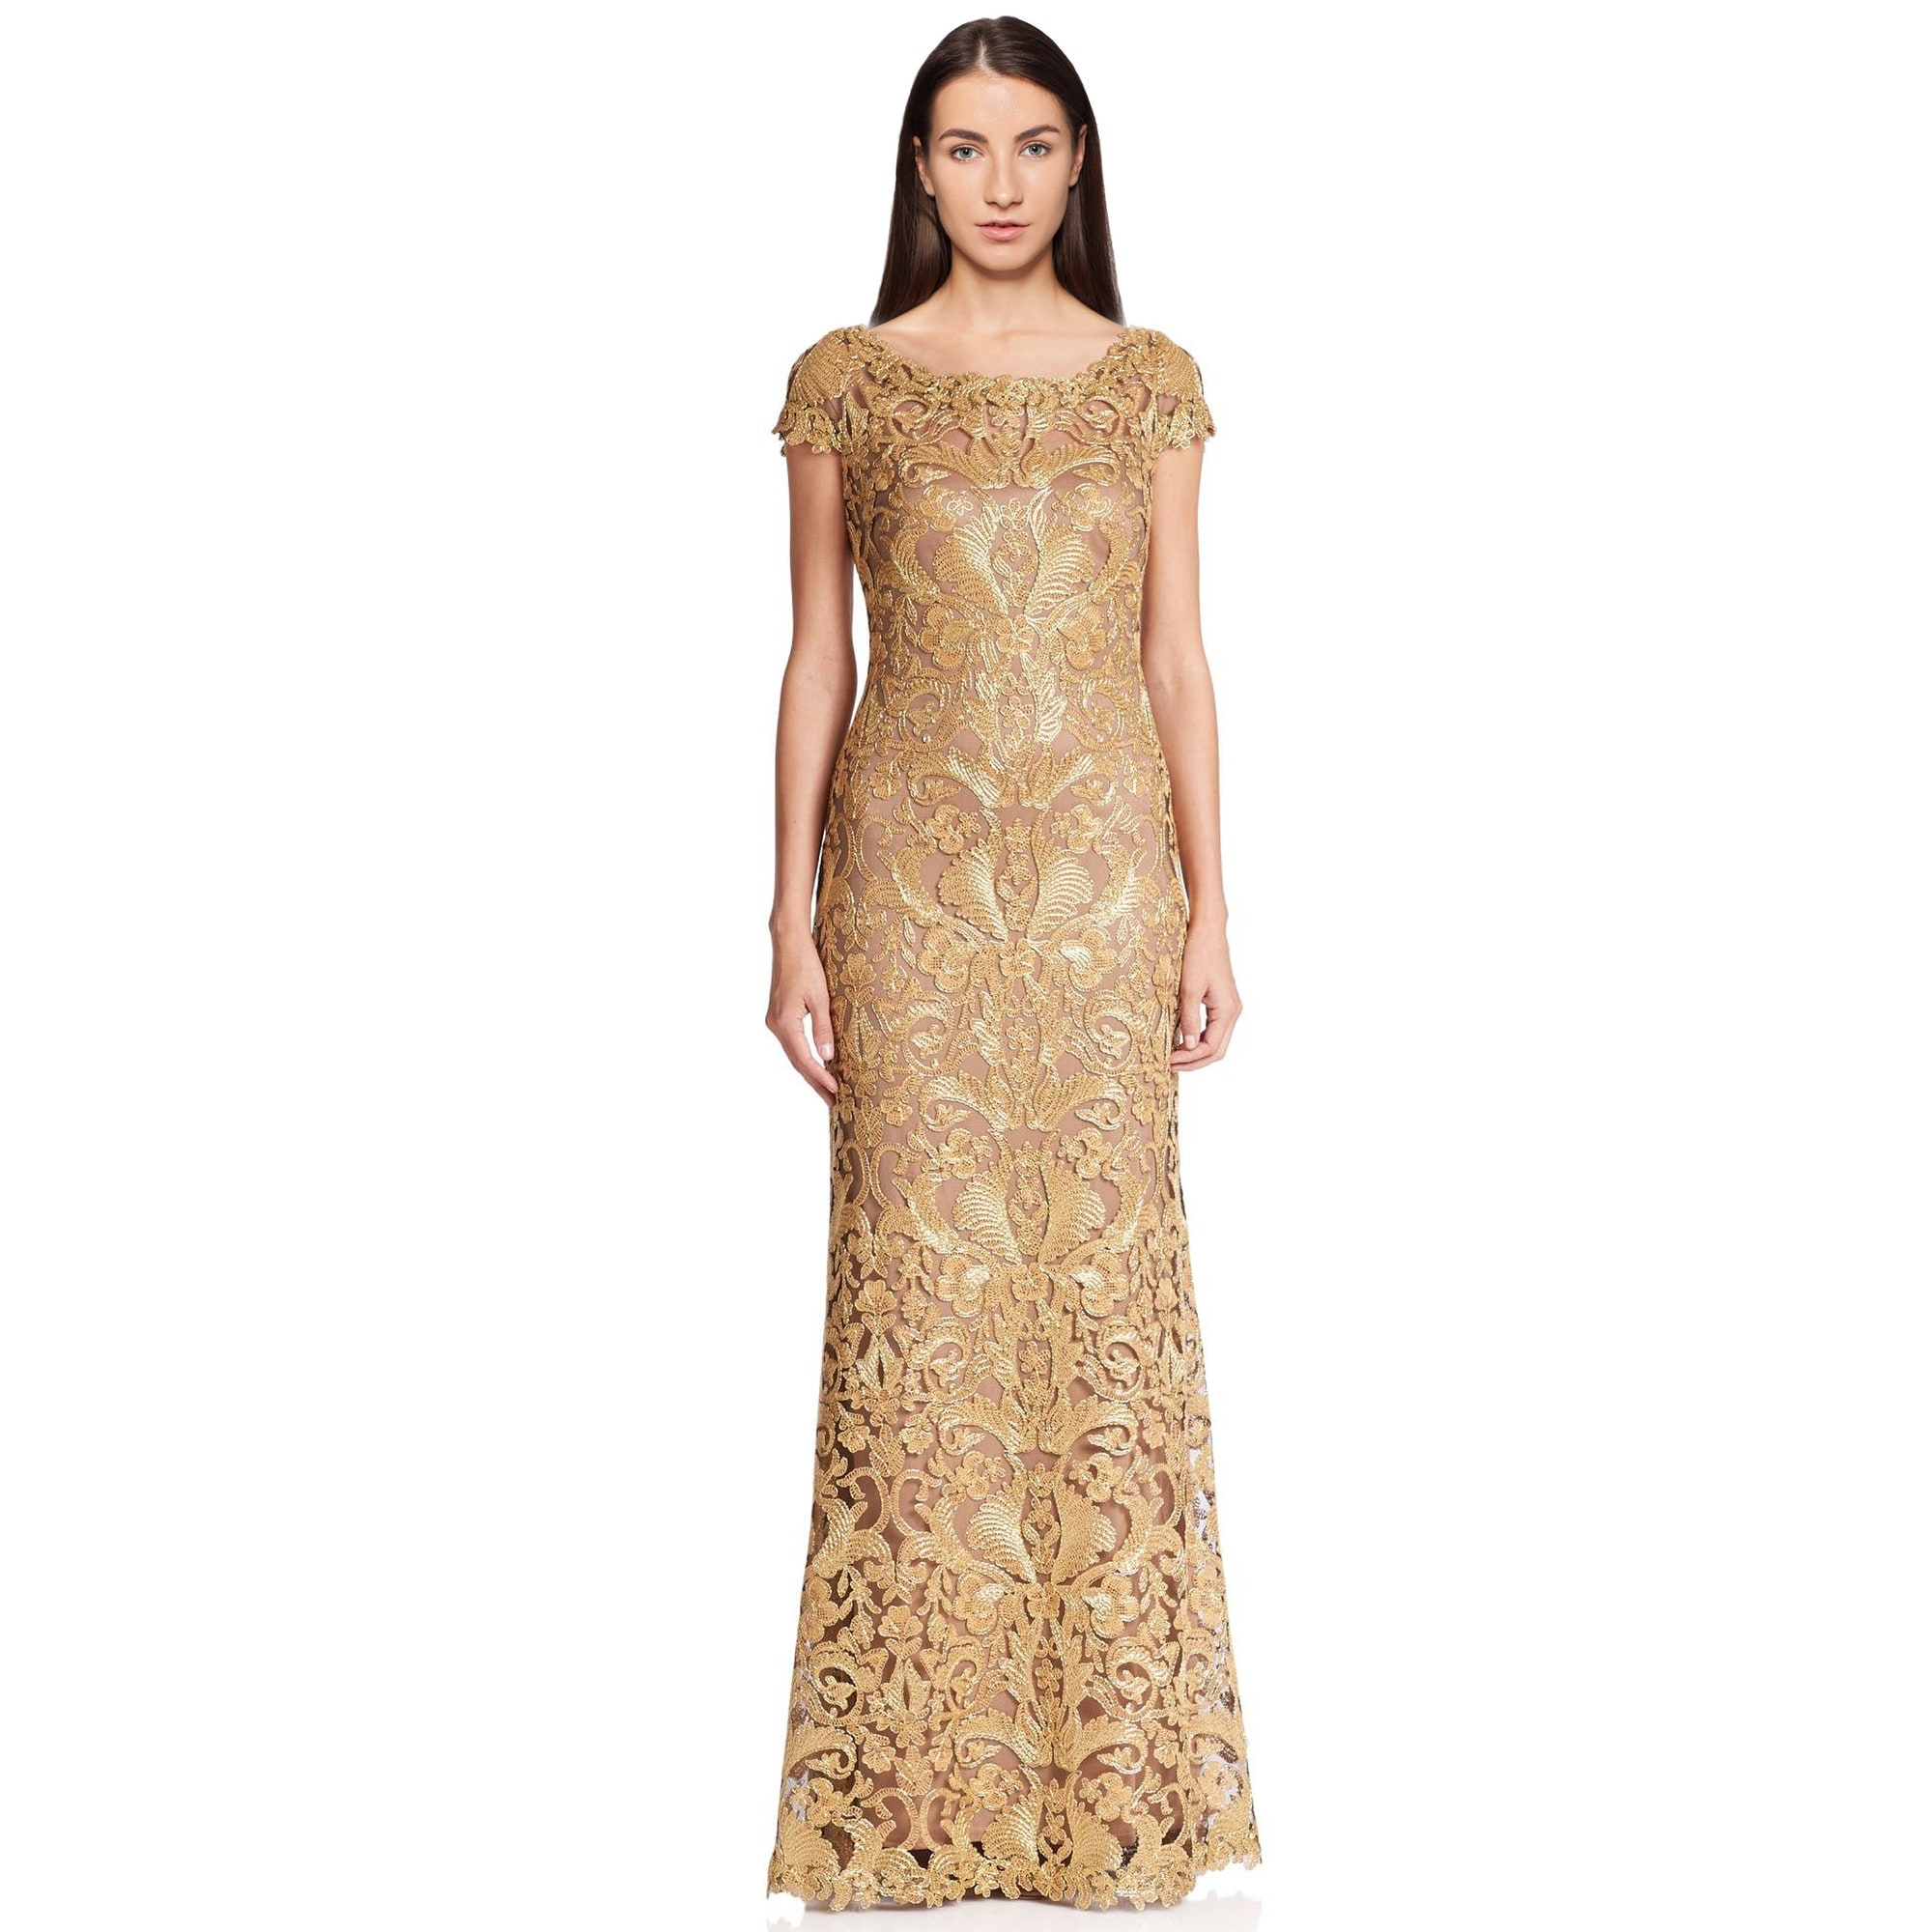 166277f339 Shop Tadashi Shoji Cord Embroidered Lace Cap Sleeve Evening Gown ...